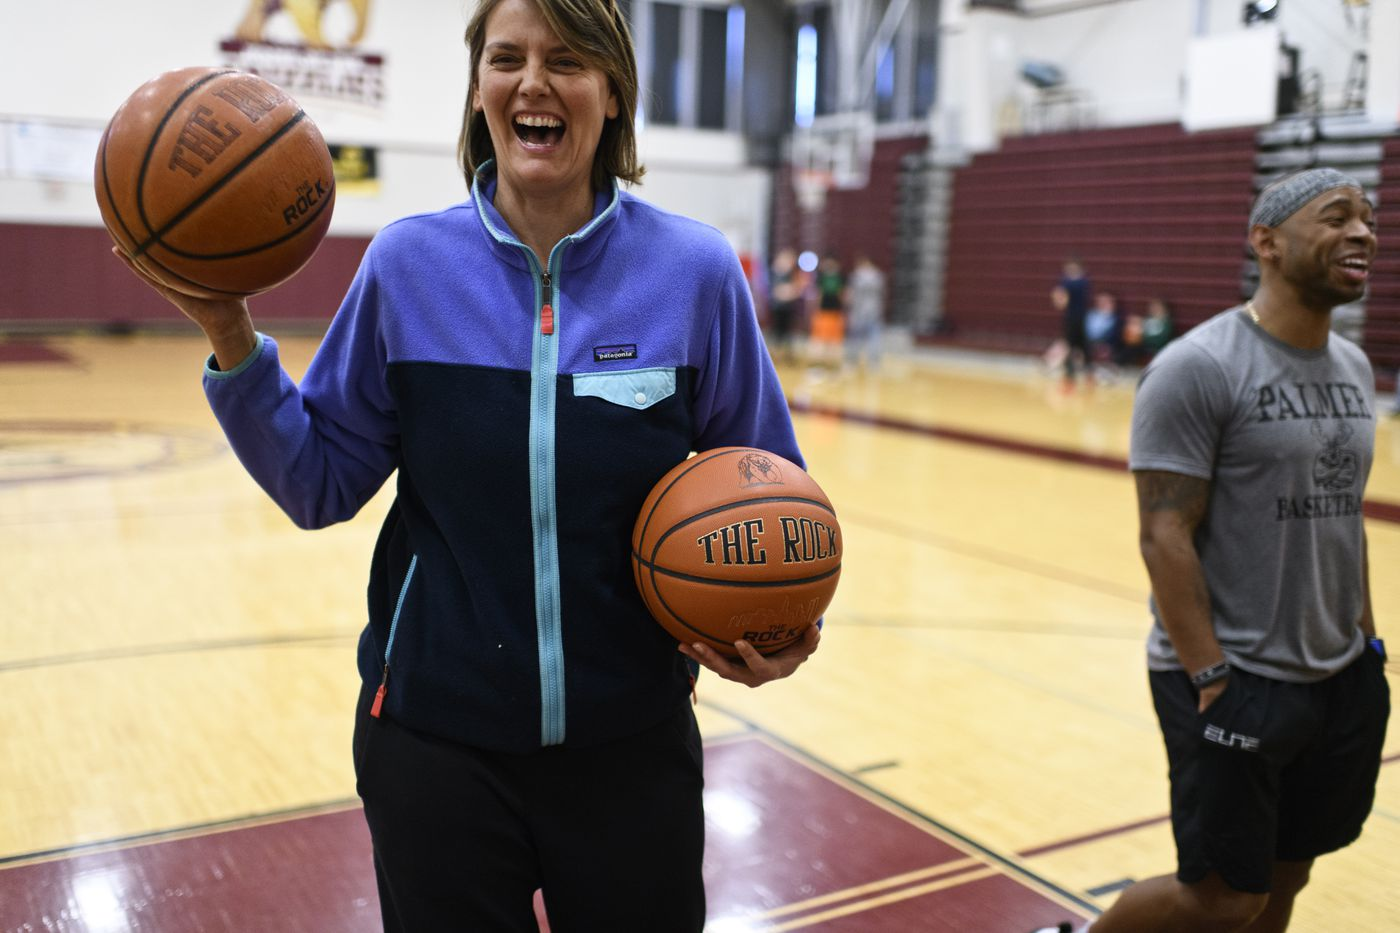 Amy Fogle laughs with her former players. Members of the 2001 Kodiak High School boys varsity basketball team gathered for a pickup game in Anchorage on April 25, 2019. Their high school state championship game was inducted into the Alaska Sports Hall of Fame this year. (Marc Lester / ADN)